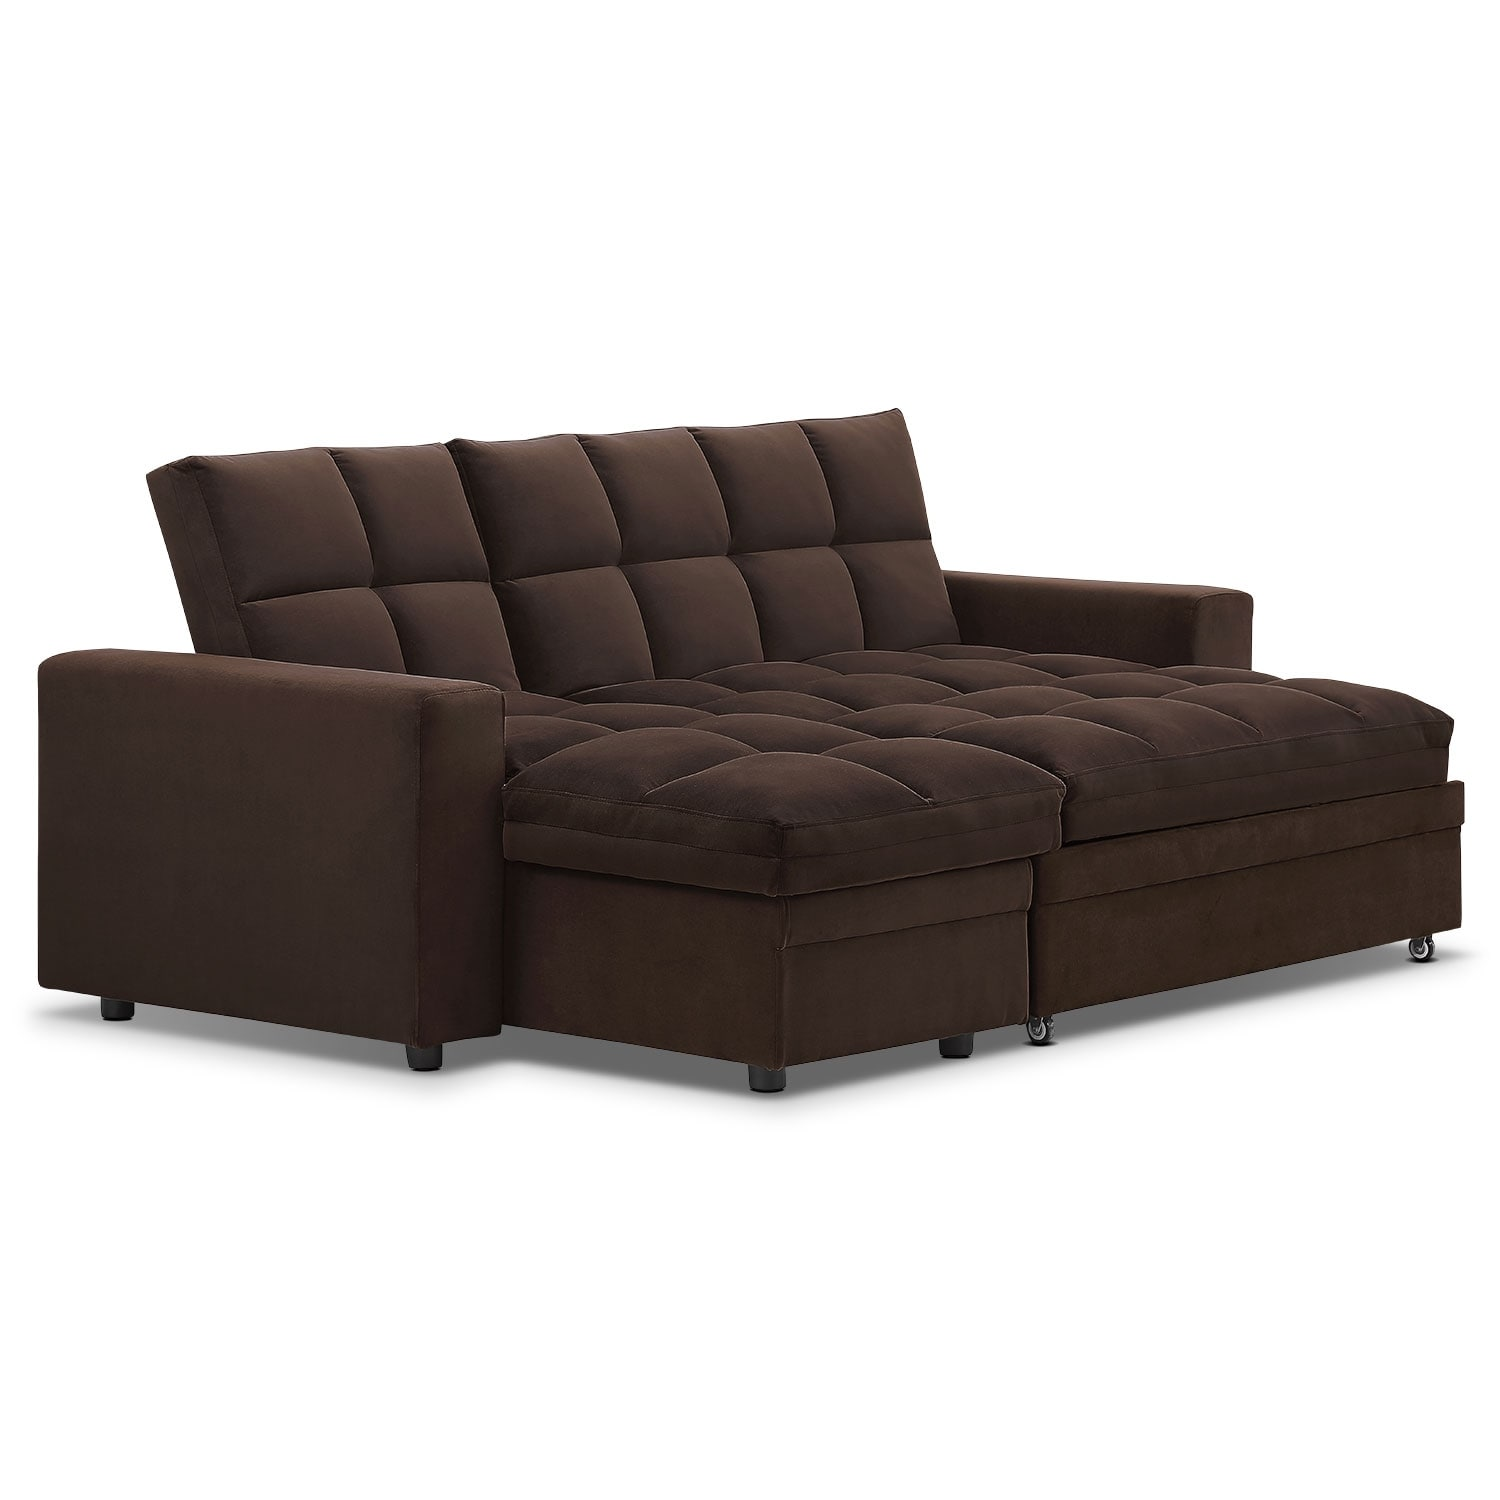 Chaise sofa - Click To Change Image